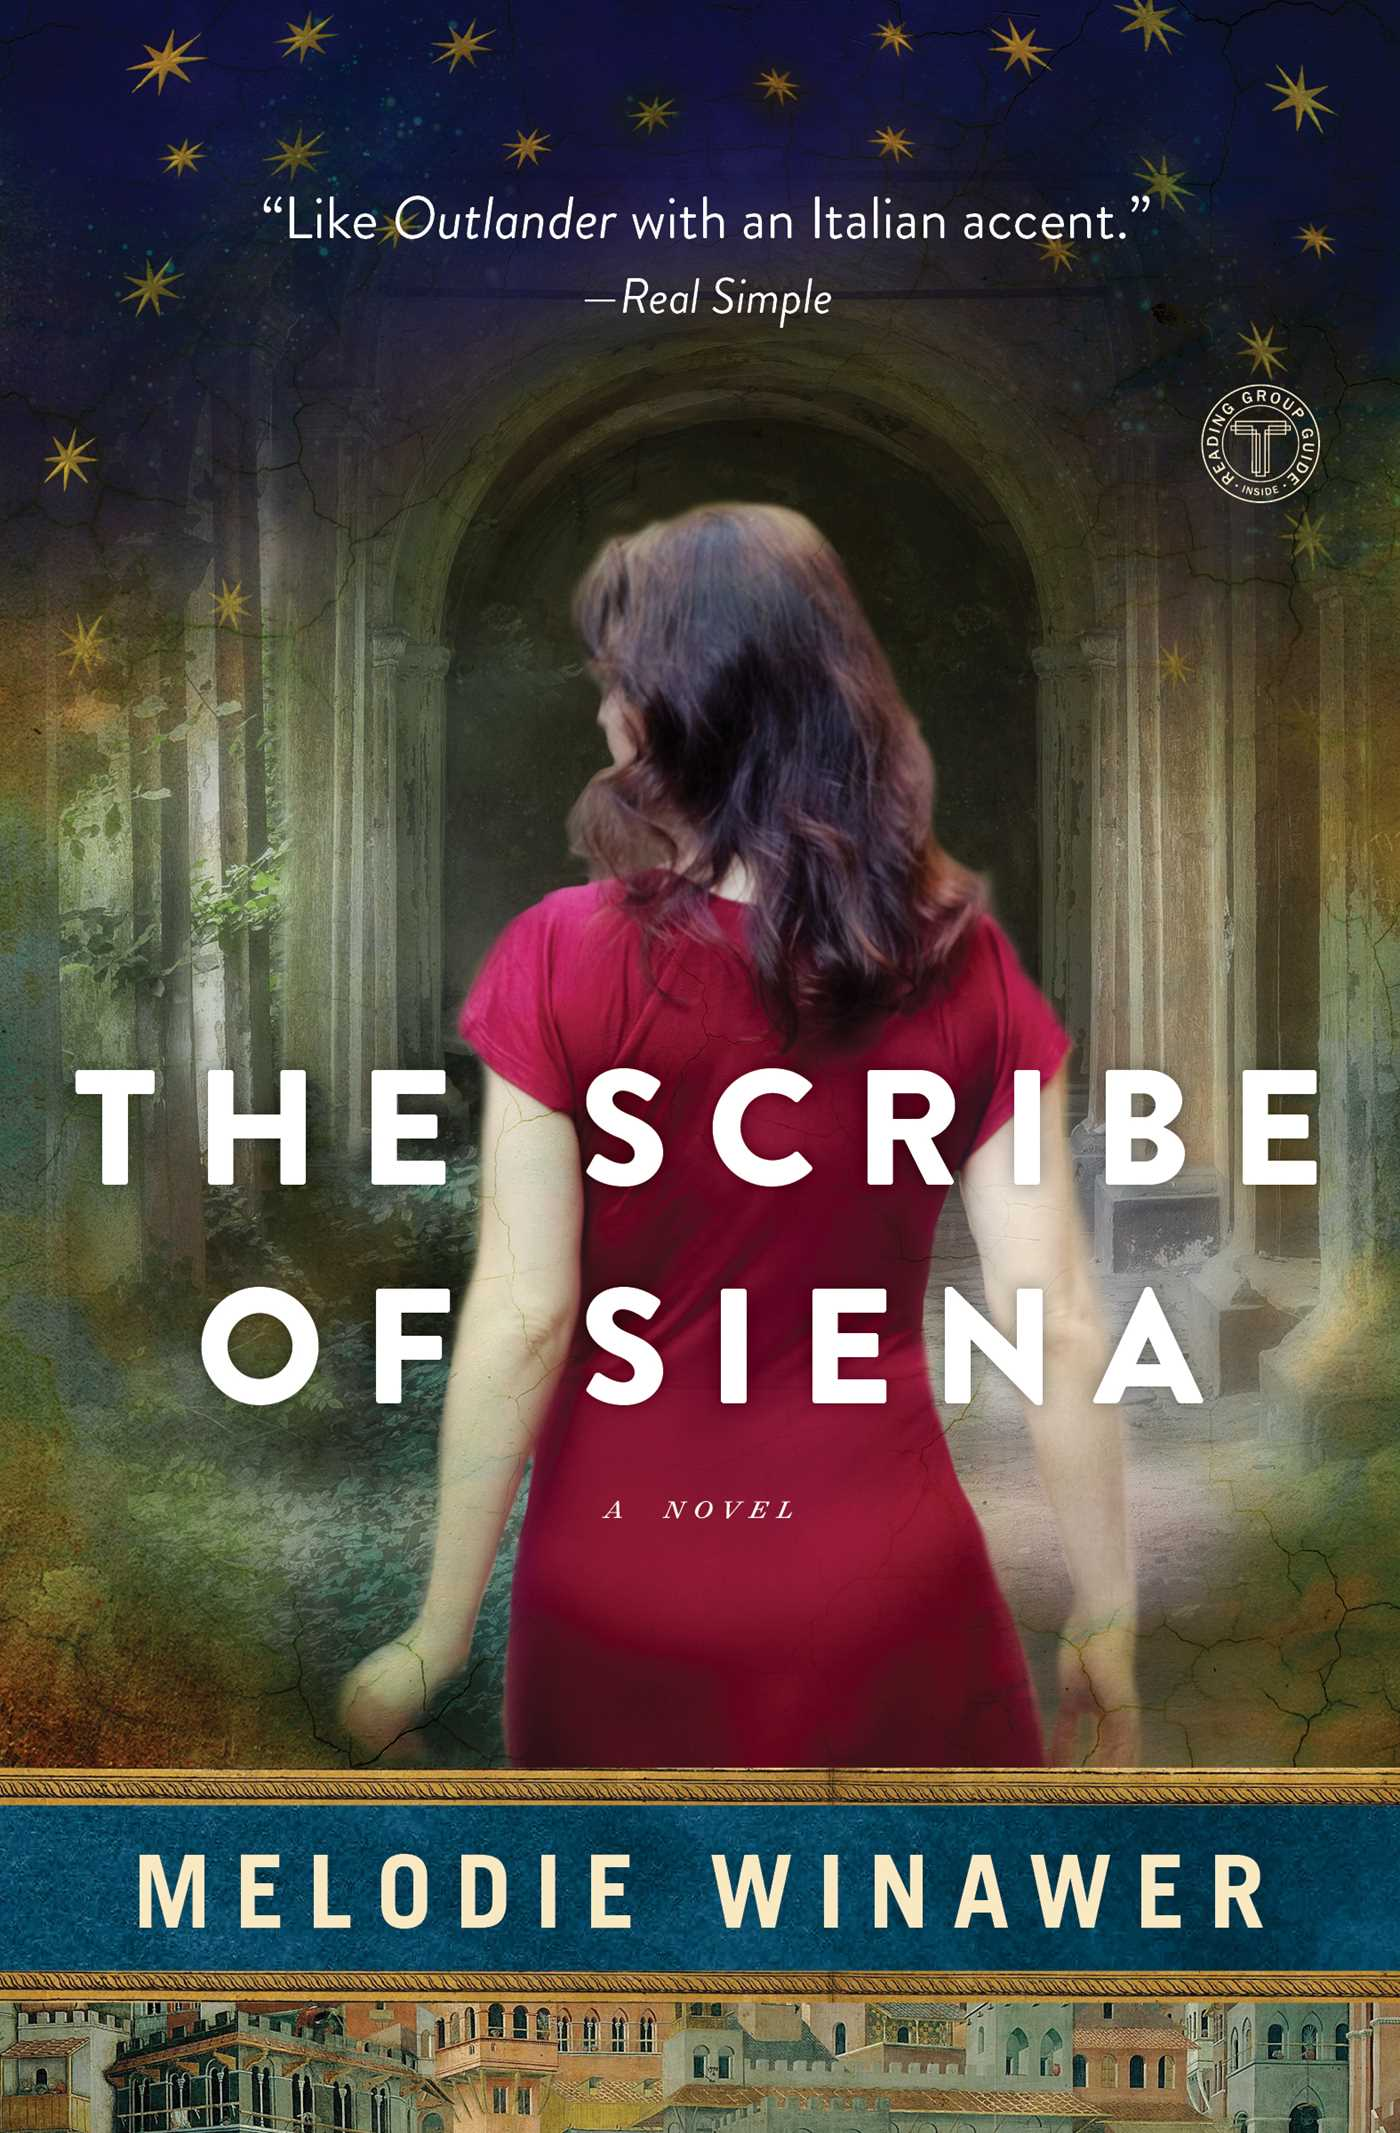 The scribe of siena 9781501152276 hr